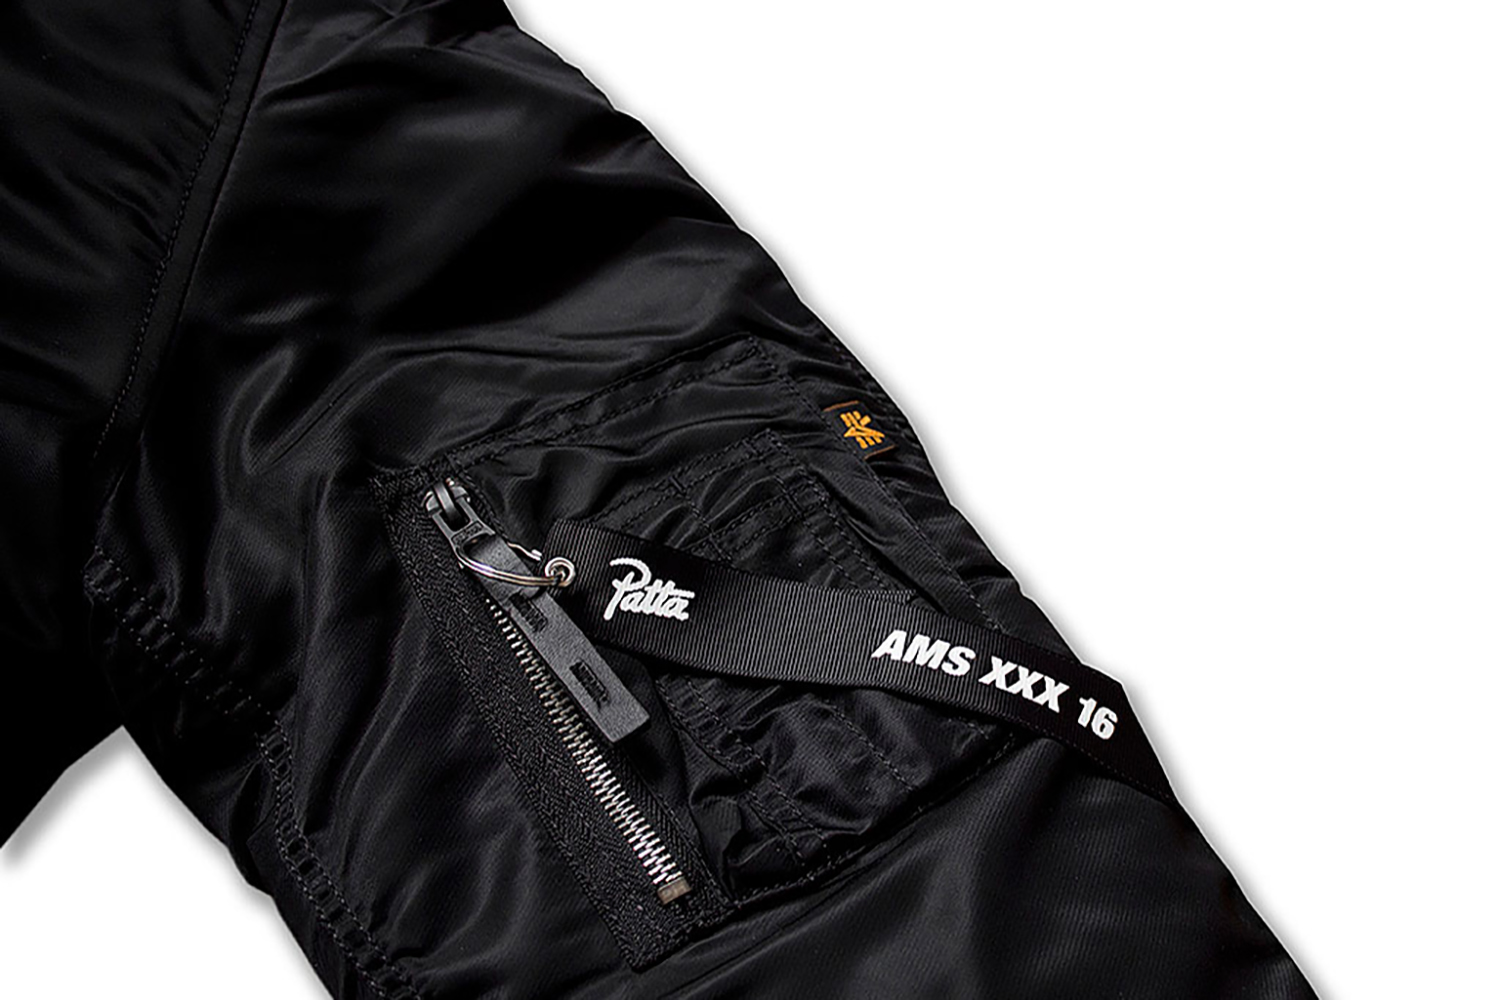 Alpha x Industries x Patta - TRENDS periodical